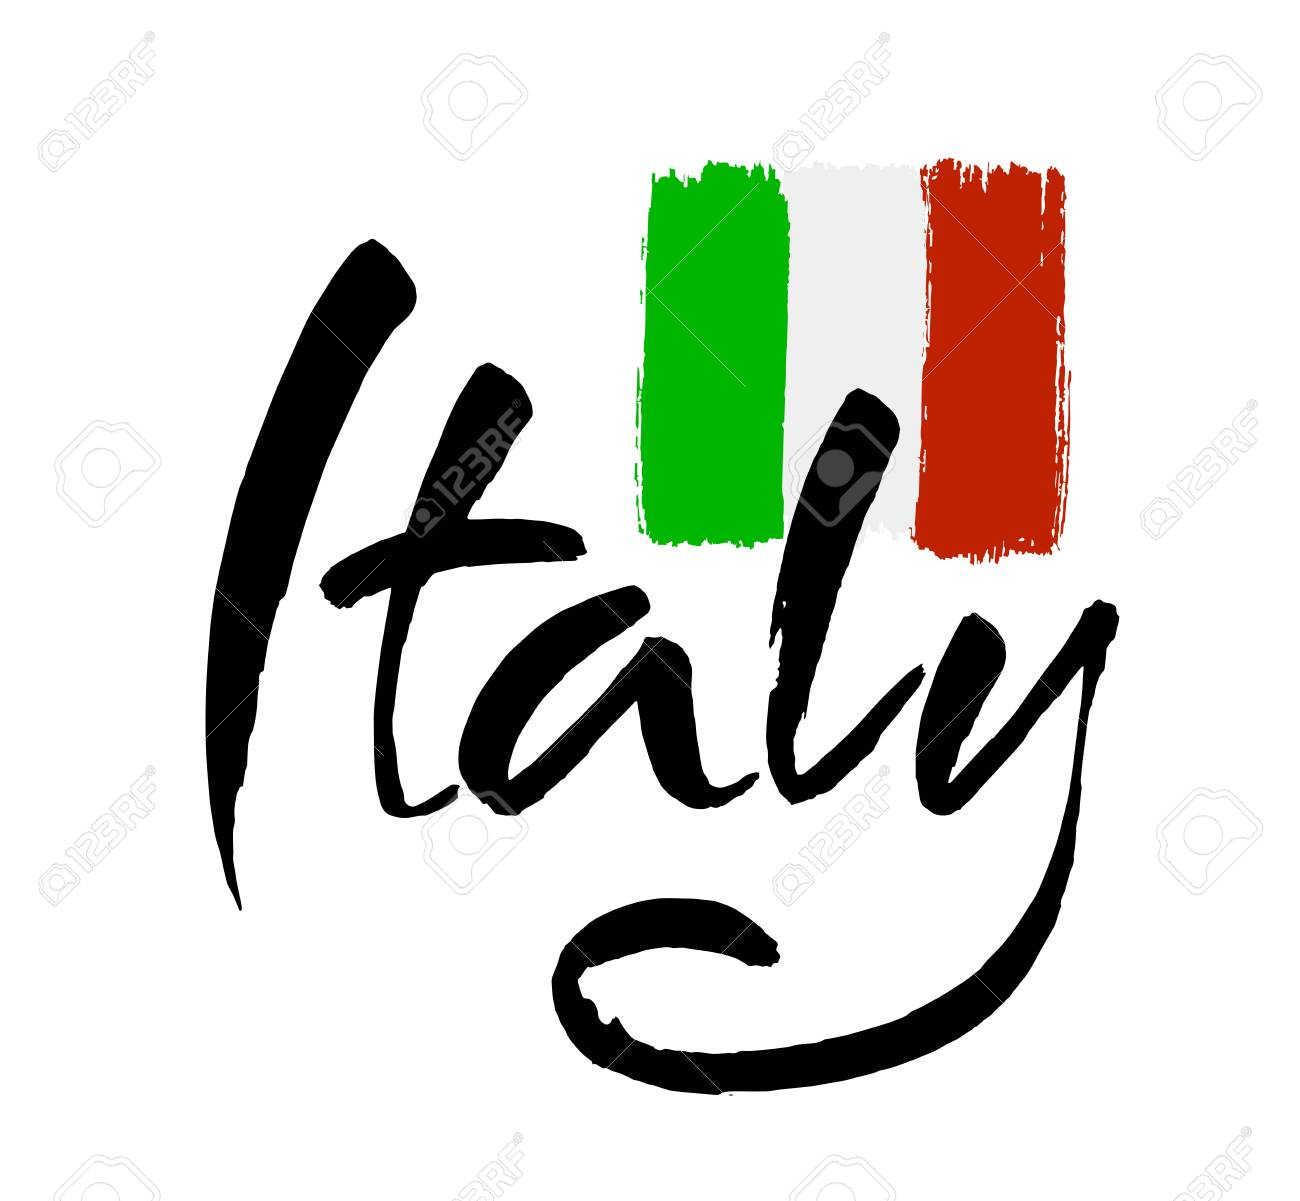 Image result for italy name